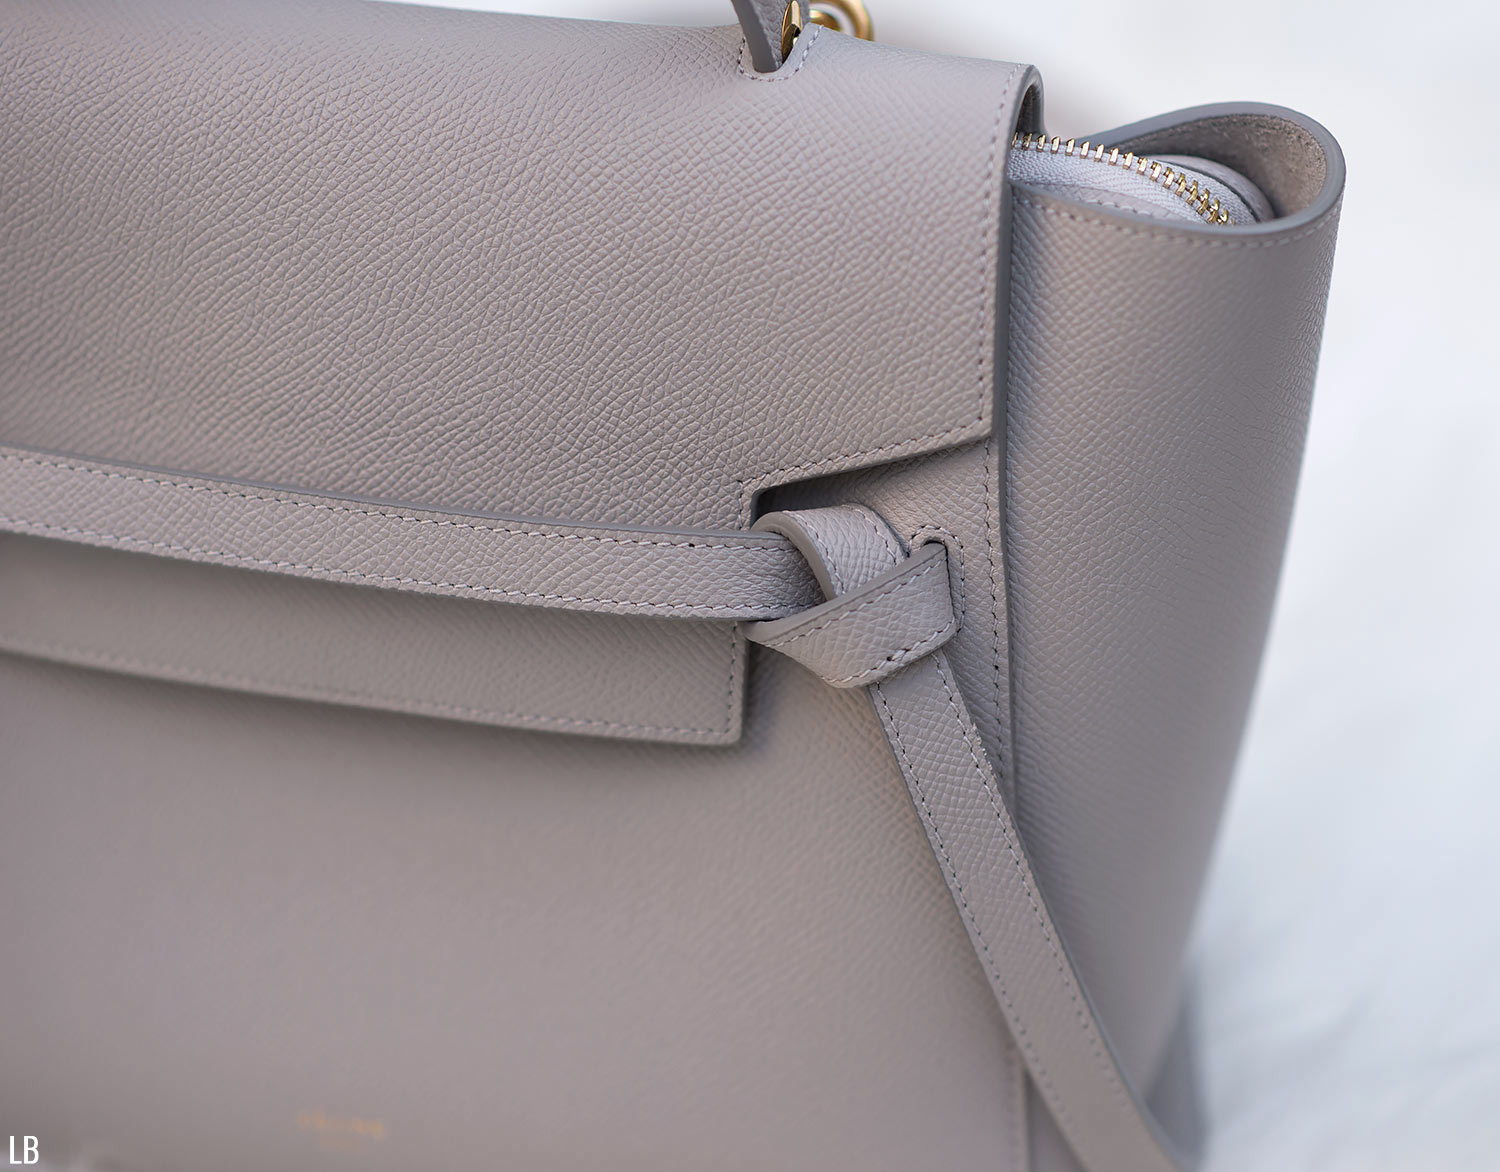 Celine Micro Belt Bag Review Raindrops Of Sapphire